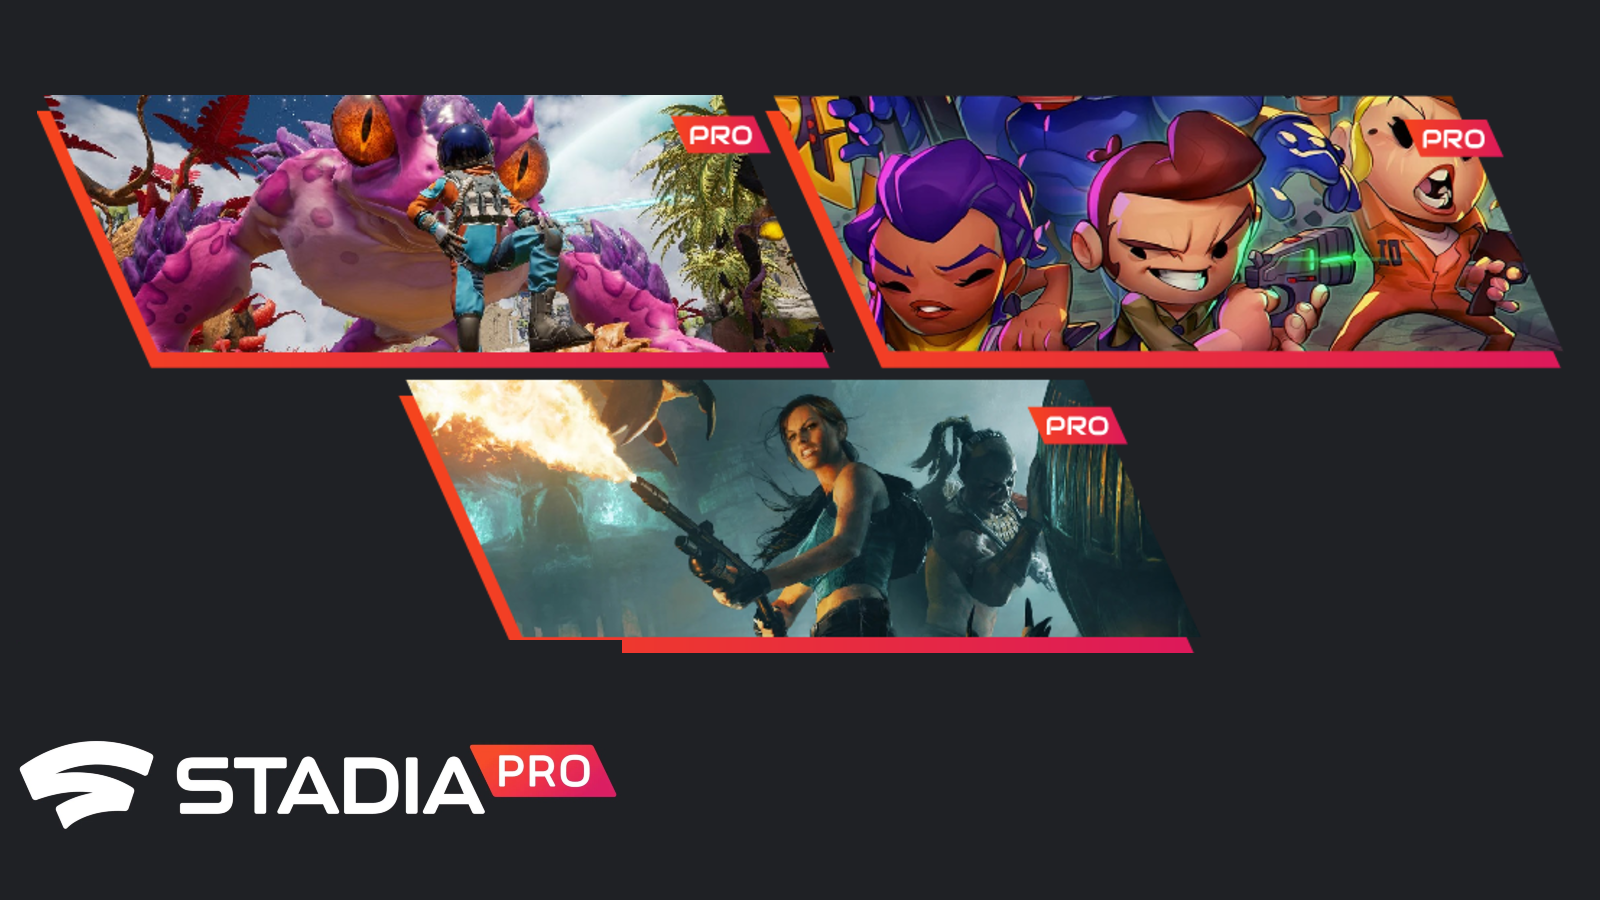 [U: Claim] Your Stadia Pro games for February – Journey to the Savage Planet, Enter the Gungeon, and Lara Croft